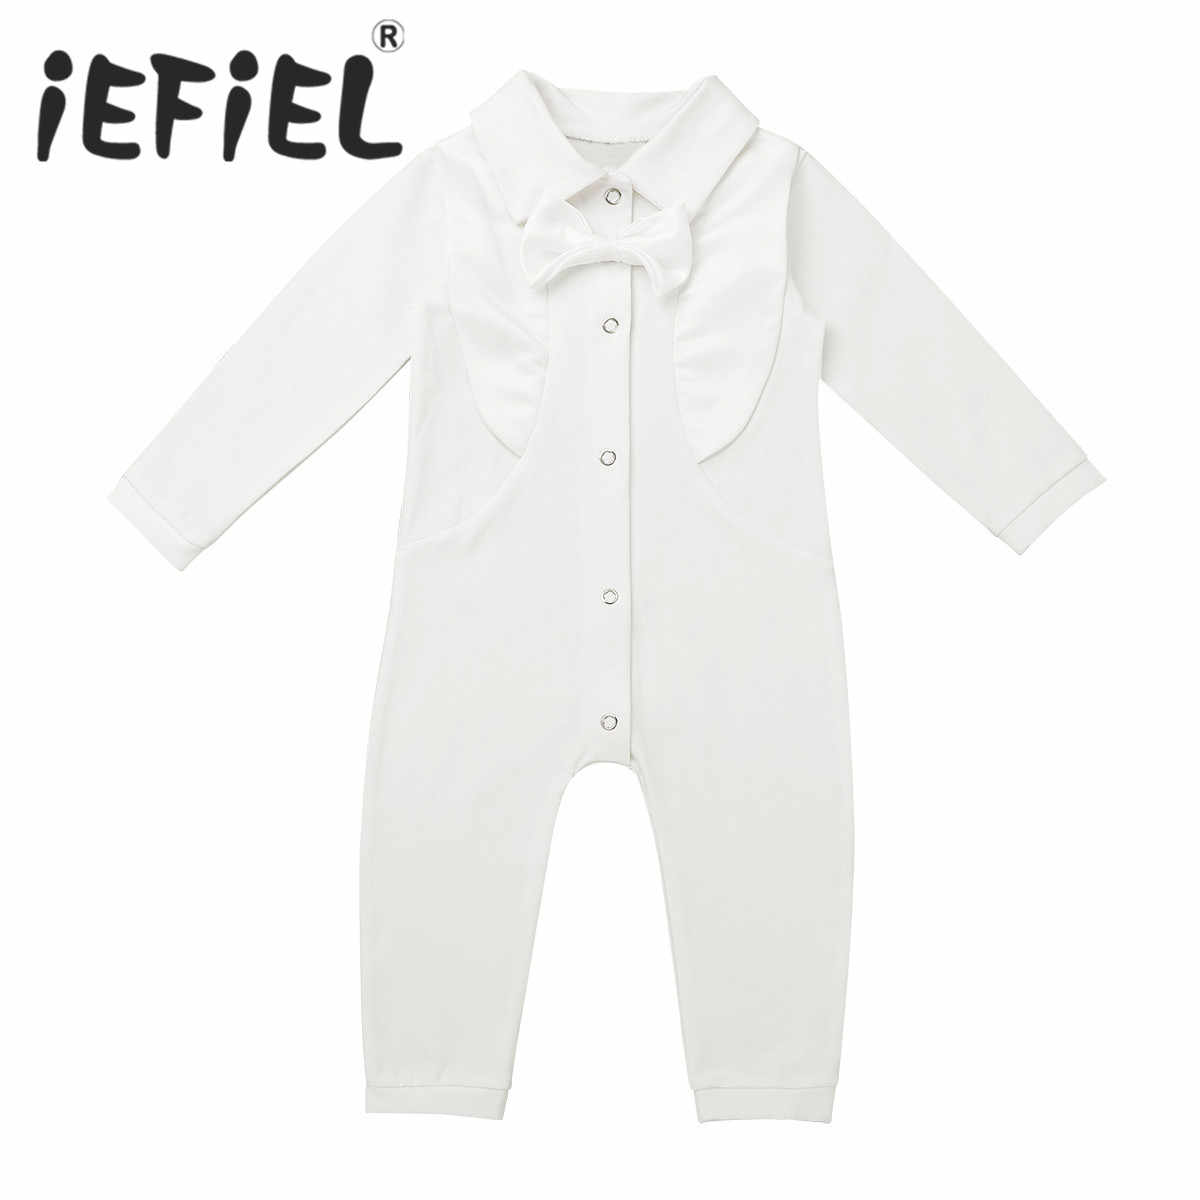 958aab9aa135 Detail Feedback Questions about Newborn Infant Baby Boys One piece ...